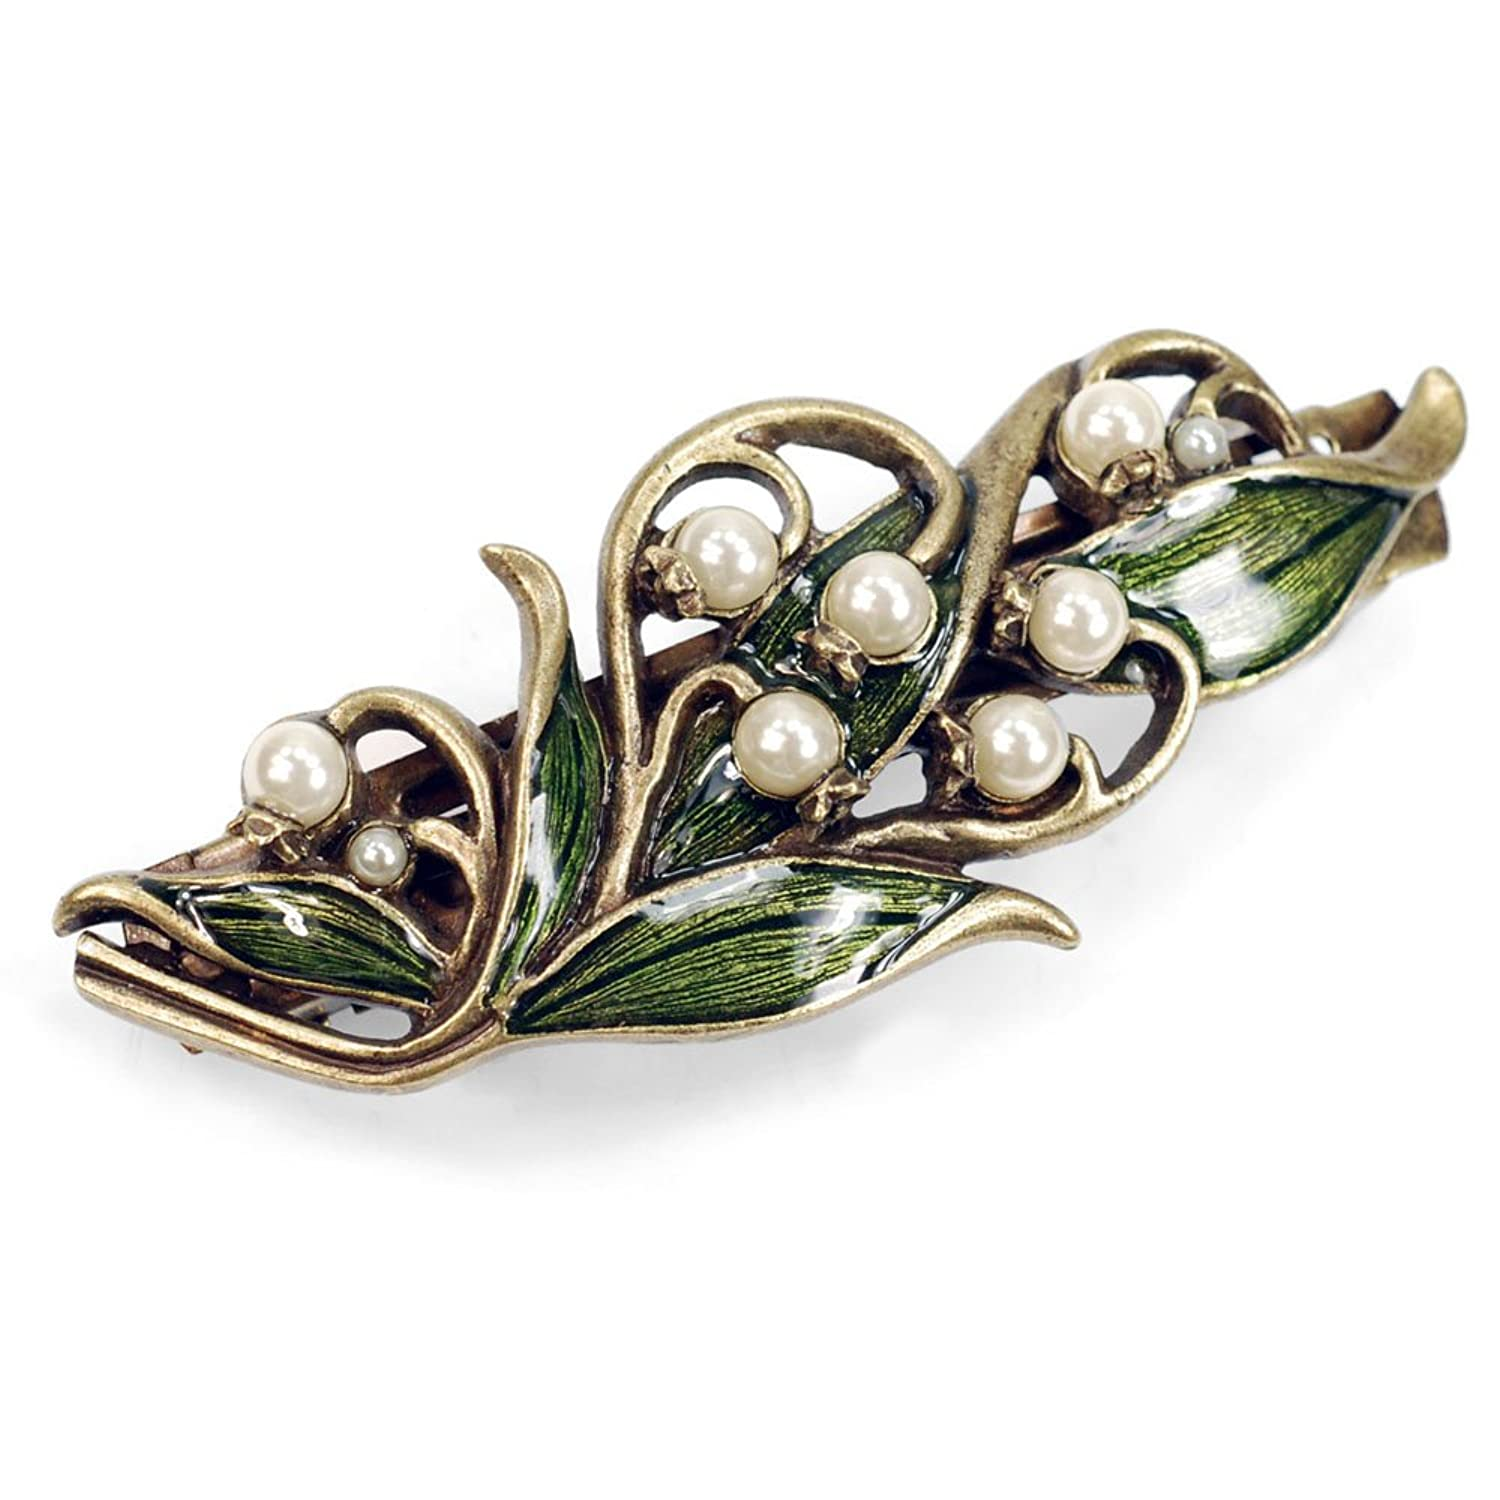 1940s Costume Jewelry: Necklaces, Earrings, Brooch, Bracelets Vintage Lily of the Valley Bridal Flower Wedding Hair Barrette Clip $39.00 AT vintagedancer.com